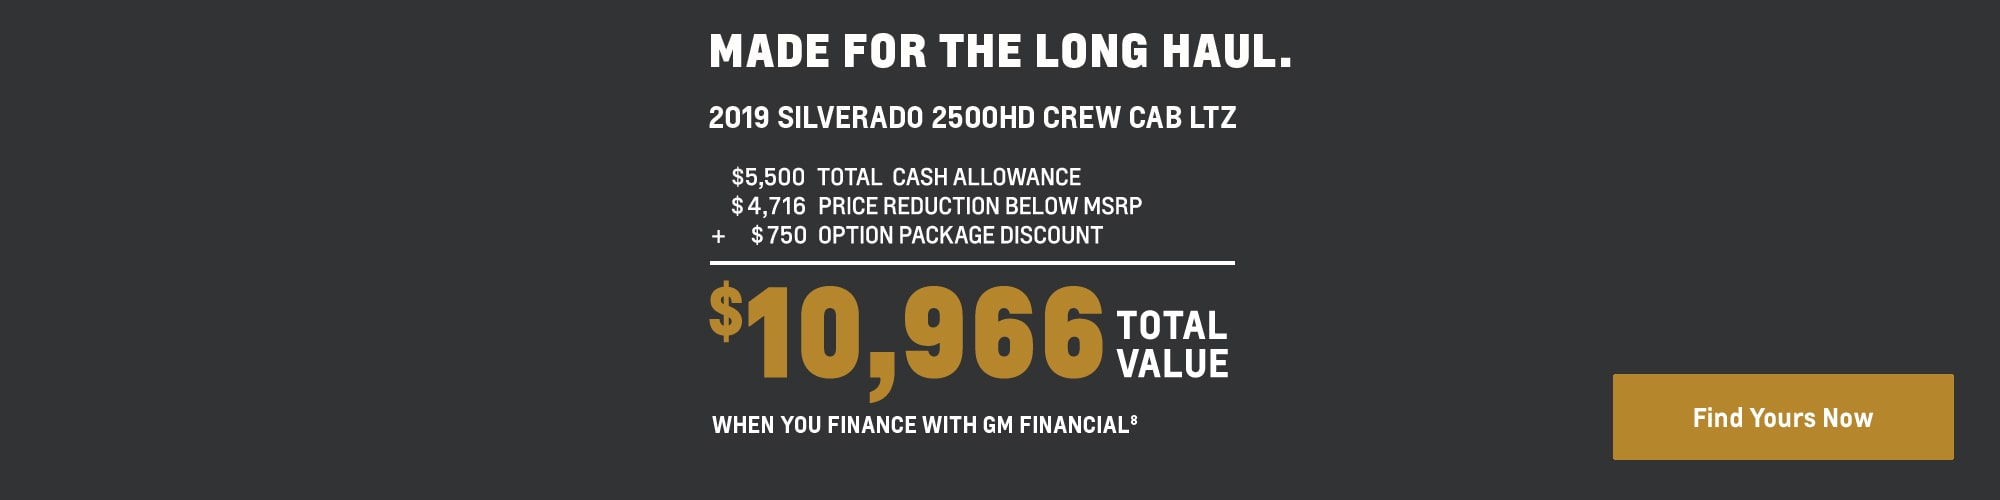 2019 Silverado 2500HD: $10,966 Total Value